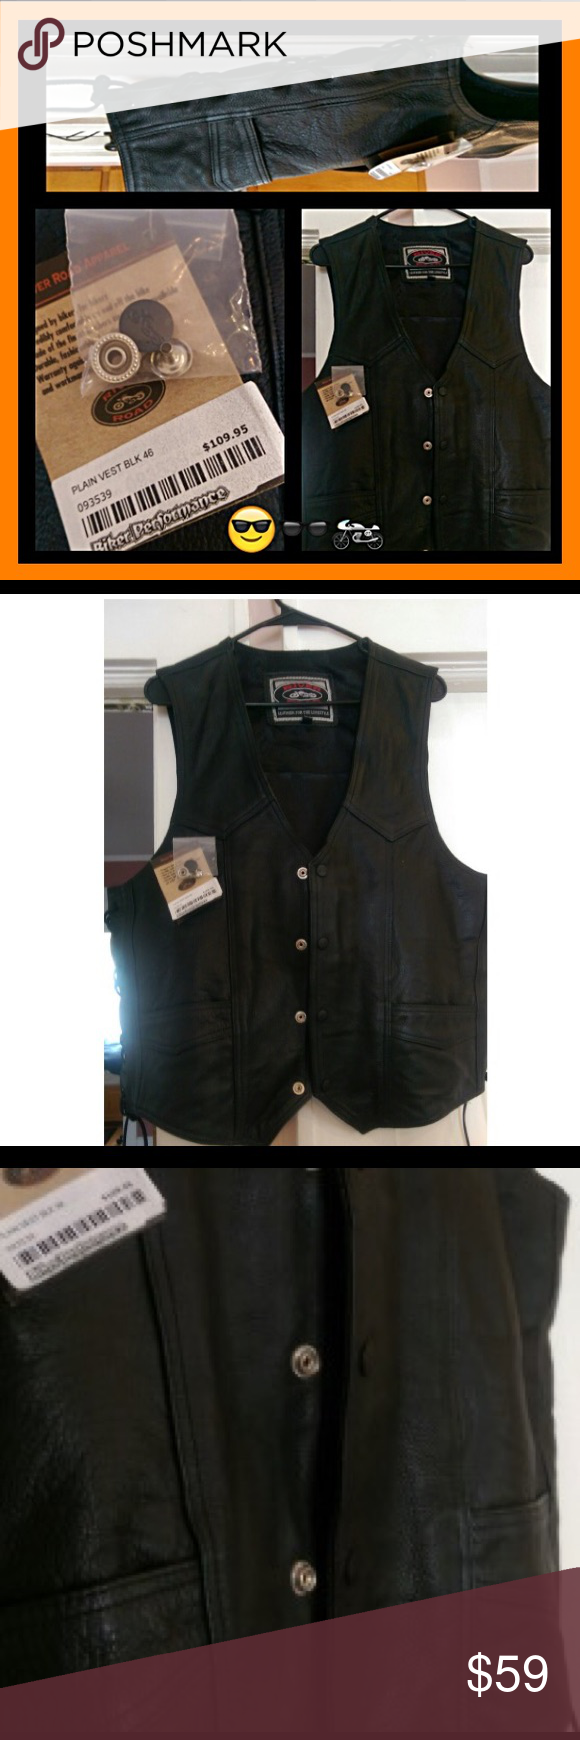 "LEATHER RIDING VEST😎🏍""BRAND NEW WITH TAGS""❤️🕶 (NOT HARLEY DAVIDSON BRAND)""NWT"" RIVERROAD BLACK LEATHER MOTORCYCLE VEST😎FOR BOTH ON & OFF THE BIKE. QUALITY MADE👍🏻FOR PROTECTION& GOOD LOOKS. FRONT SNAP CLOSURE & REALLY COOL..STYLISH TIE UP SIDES THAT ADJUST TO GIVE A PERFECT FIT OR LEAVE LOOSE IF WEARING A HEAVY SWEATER, HOODIE UNDERNEATH😘FITS A MEN SIZE LARGE AND ALSO A WOMENS LARGE/XL. RECENT PURCHASE ON VACAY THINKIN I FORGOT TO PACK MY OLD ONE WHICH WAS IN MY LUGGAGE ALL…"